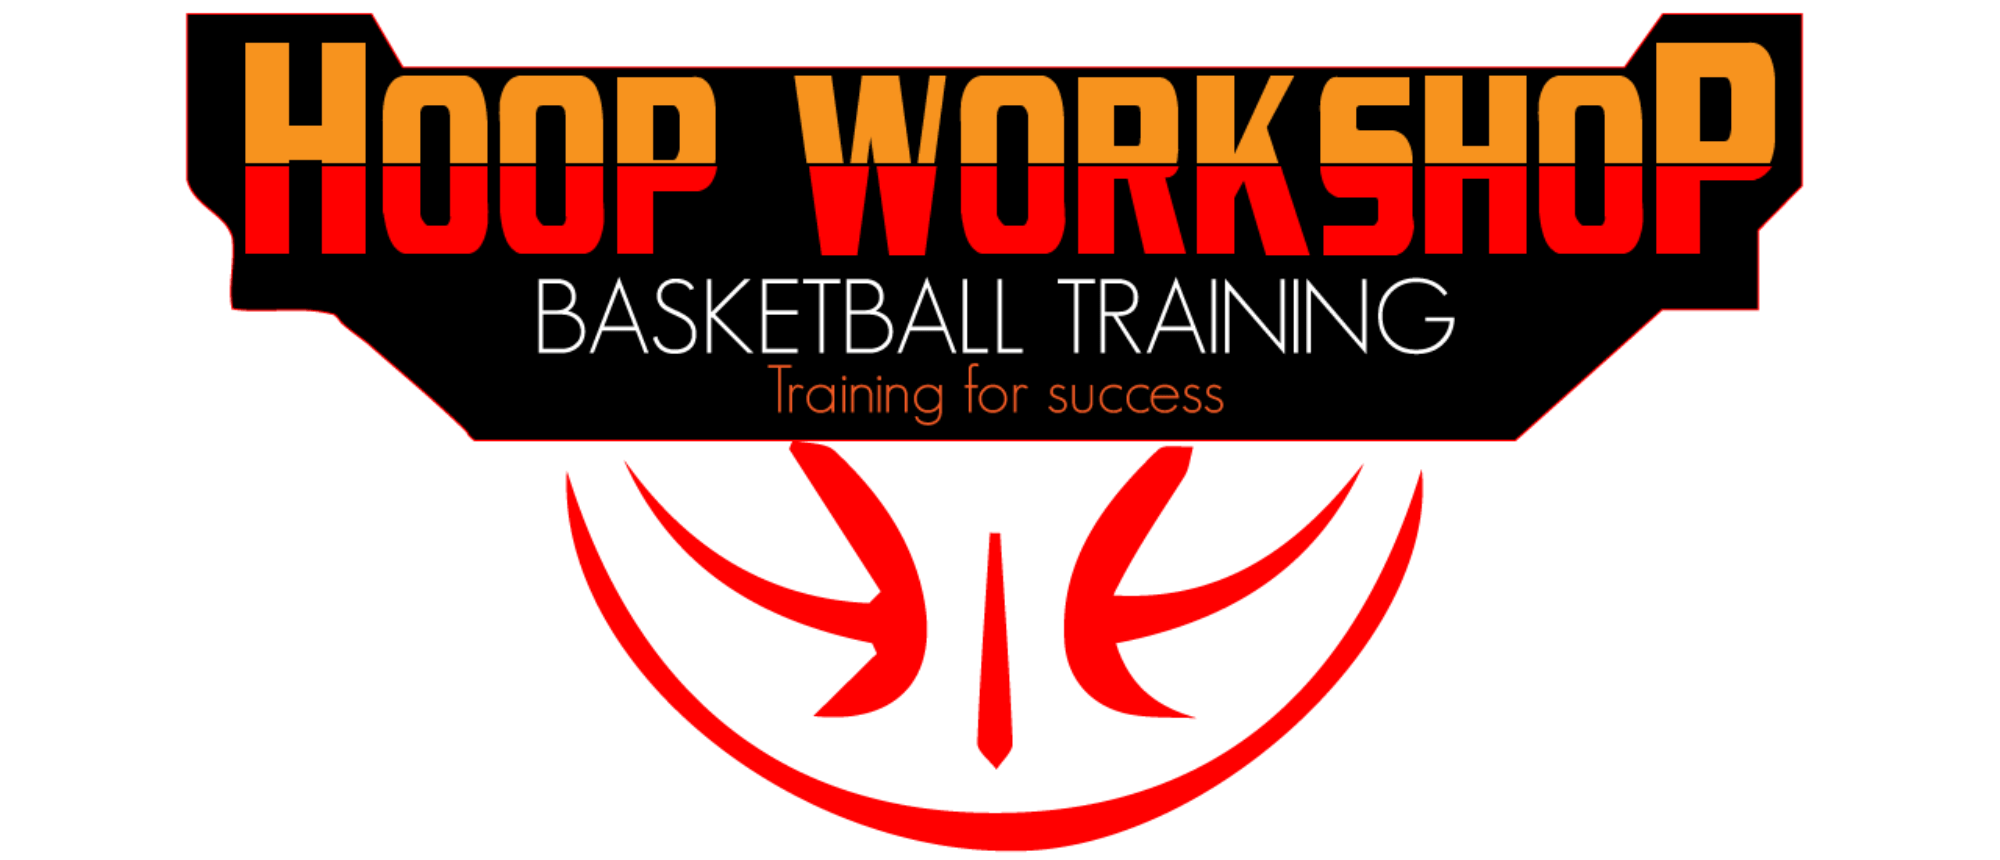 Hoop workshop Basketball training